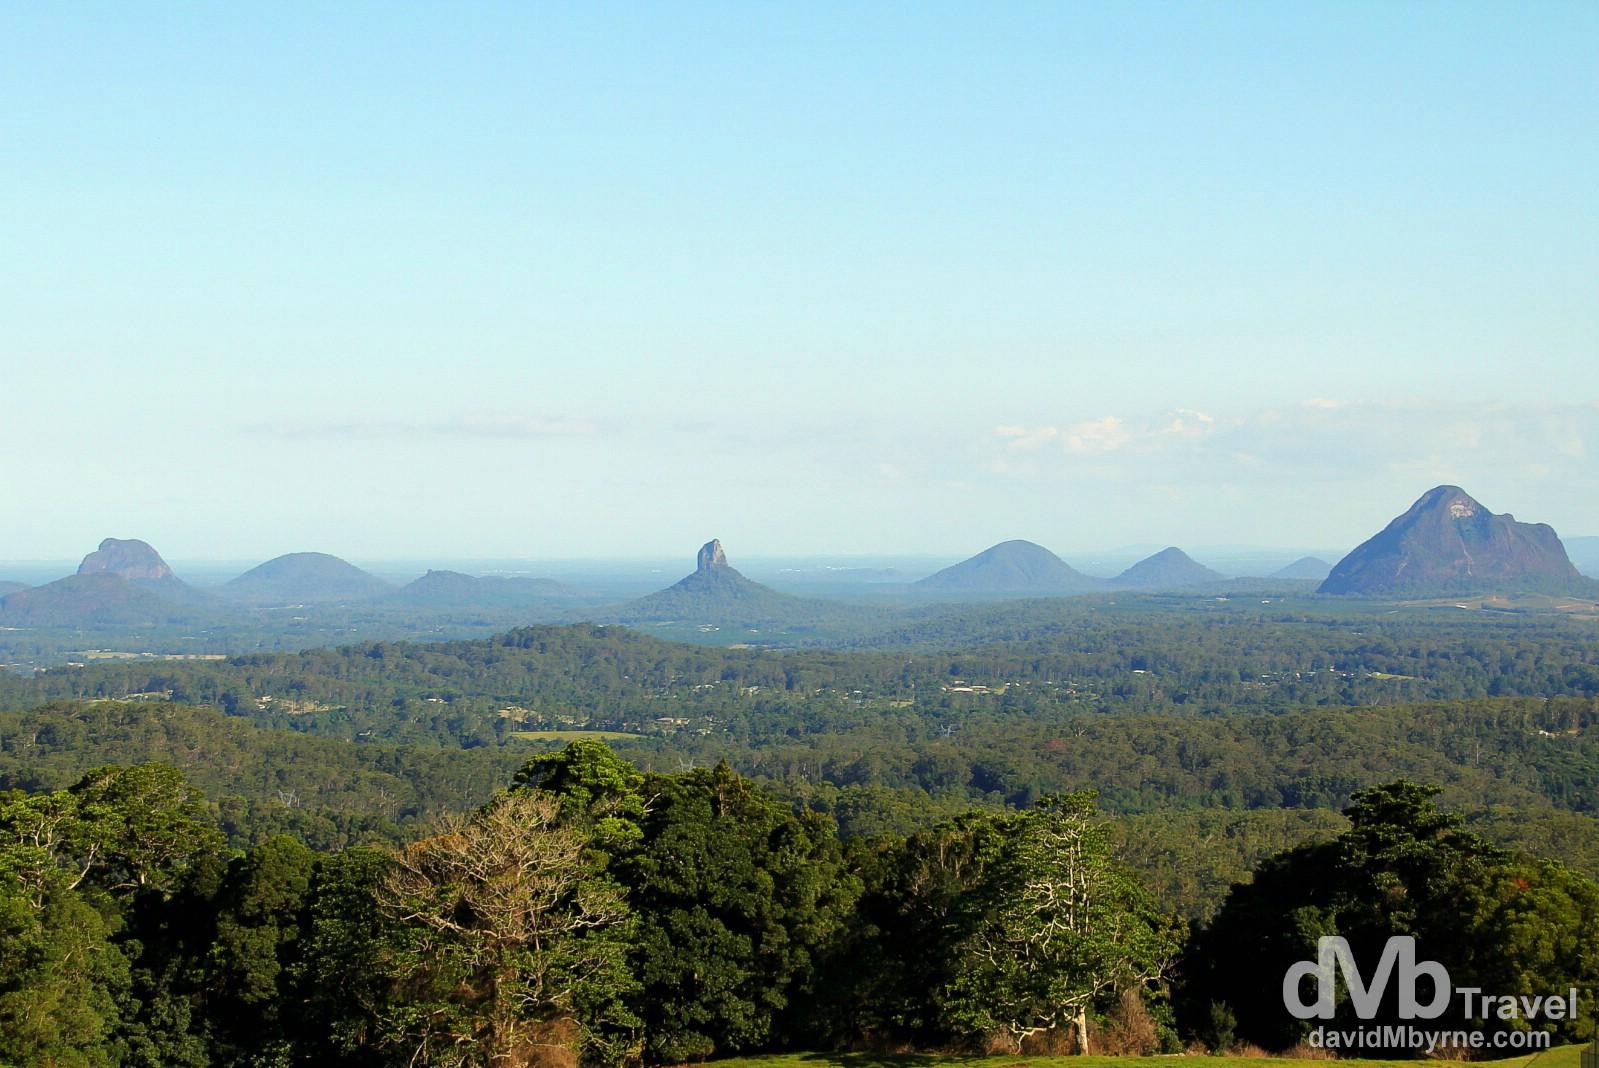 The Glass House Mountains as seen from a lookout in the Mary Cairncross Reserve. The mountains are a group of eleven hills, volcanic plugs of hard alkali rhyolite, that rise abruptly from the coastal plain, the results of ancient volcanic activity some 27 million years ago. They are not all that high - the highest mountain, Mount Beerwah, is only 556 metres above sea level - but shrouded in mist they, and the plain they sit on, are a beautiful sight. The mountains were named by explorer Captain James Cook on 17 May 1770 as the peaks reminded him of the glass furnaces in his home county of Yorkshire. Queensland, Australia. April 4th 2013.